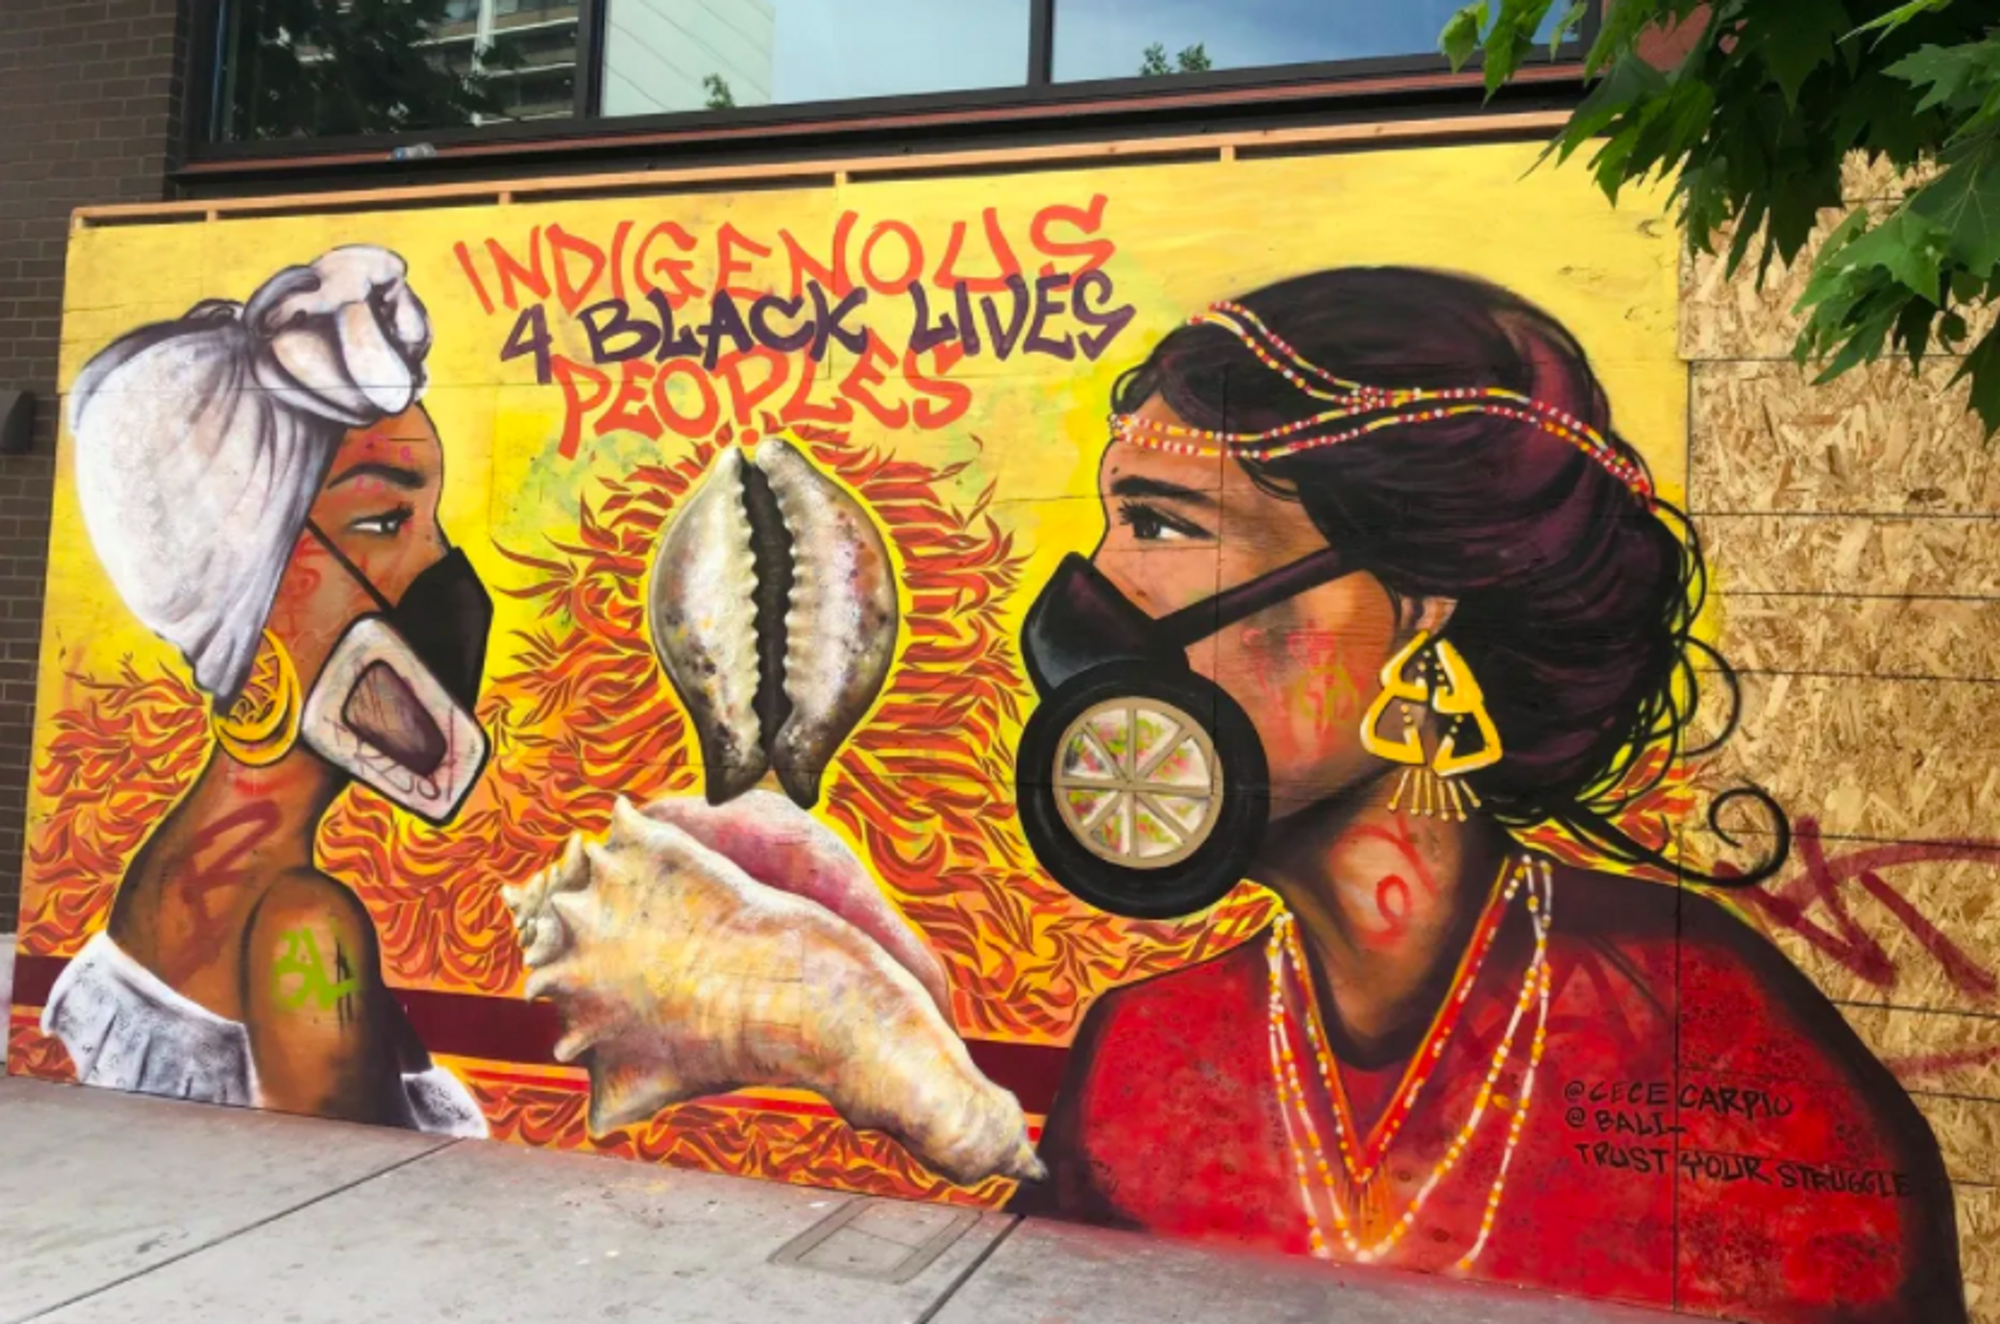 Breathtaking murals for justice proliferate on the streets of downtown Oakland